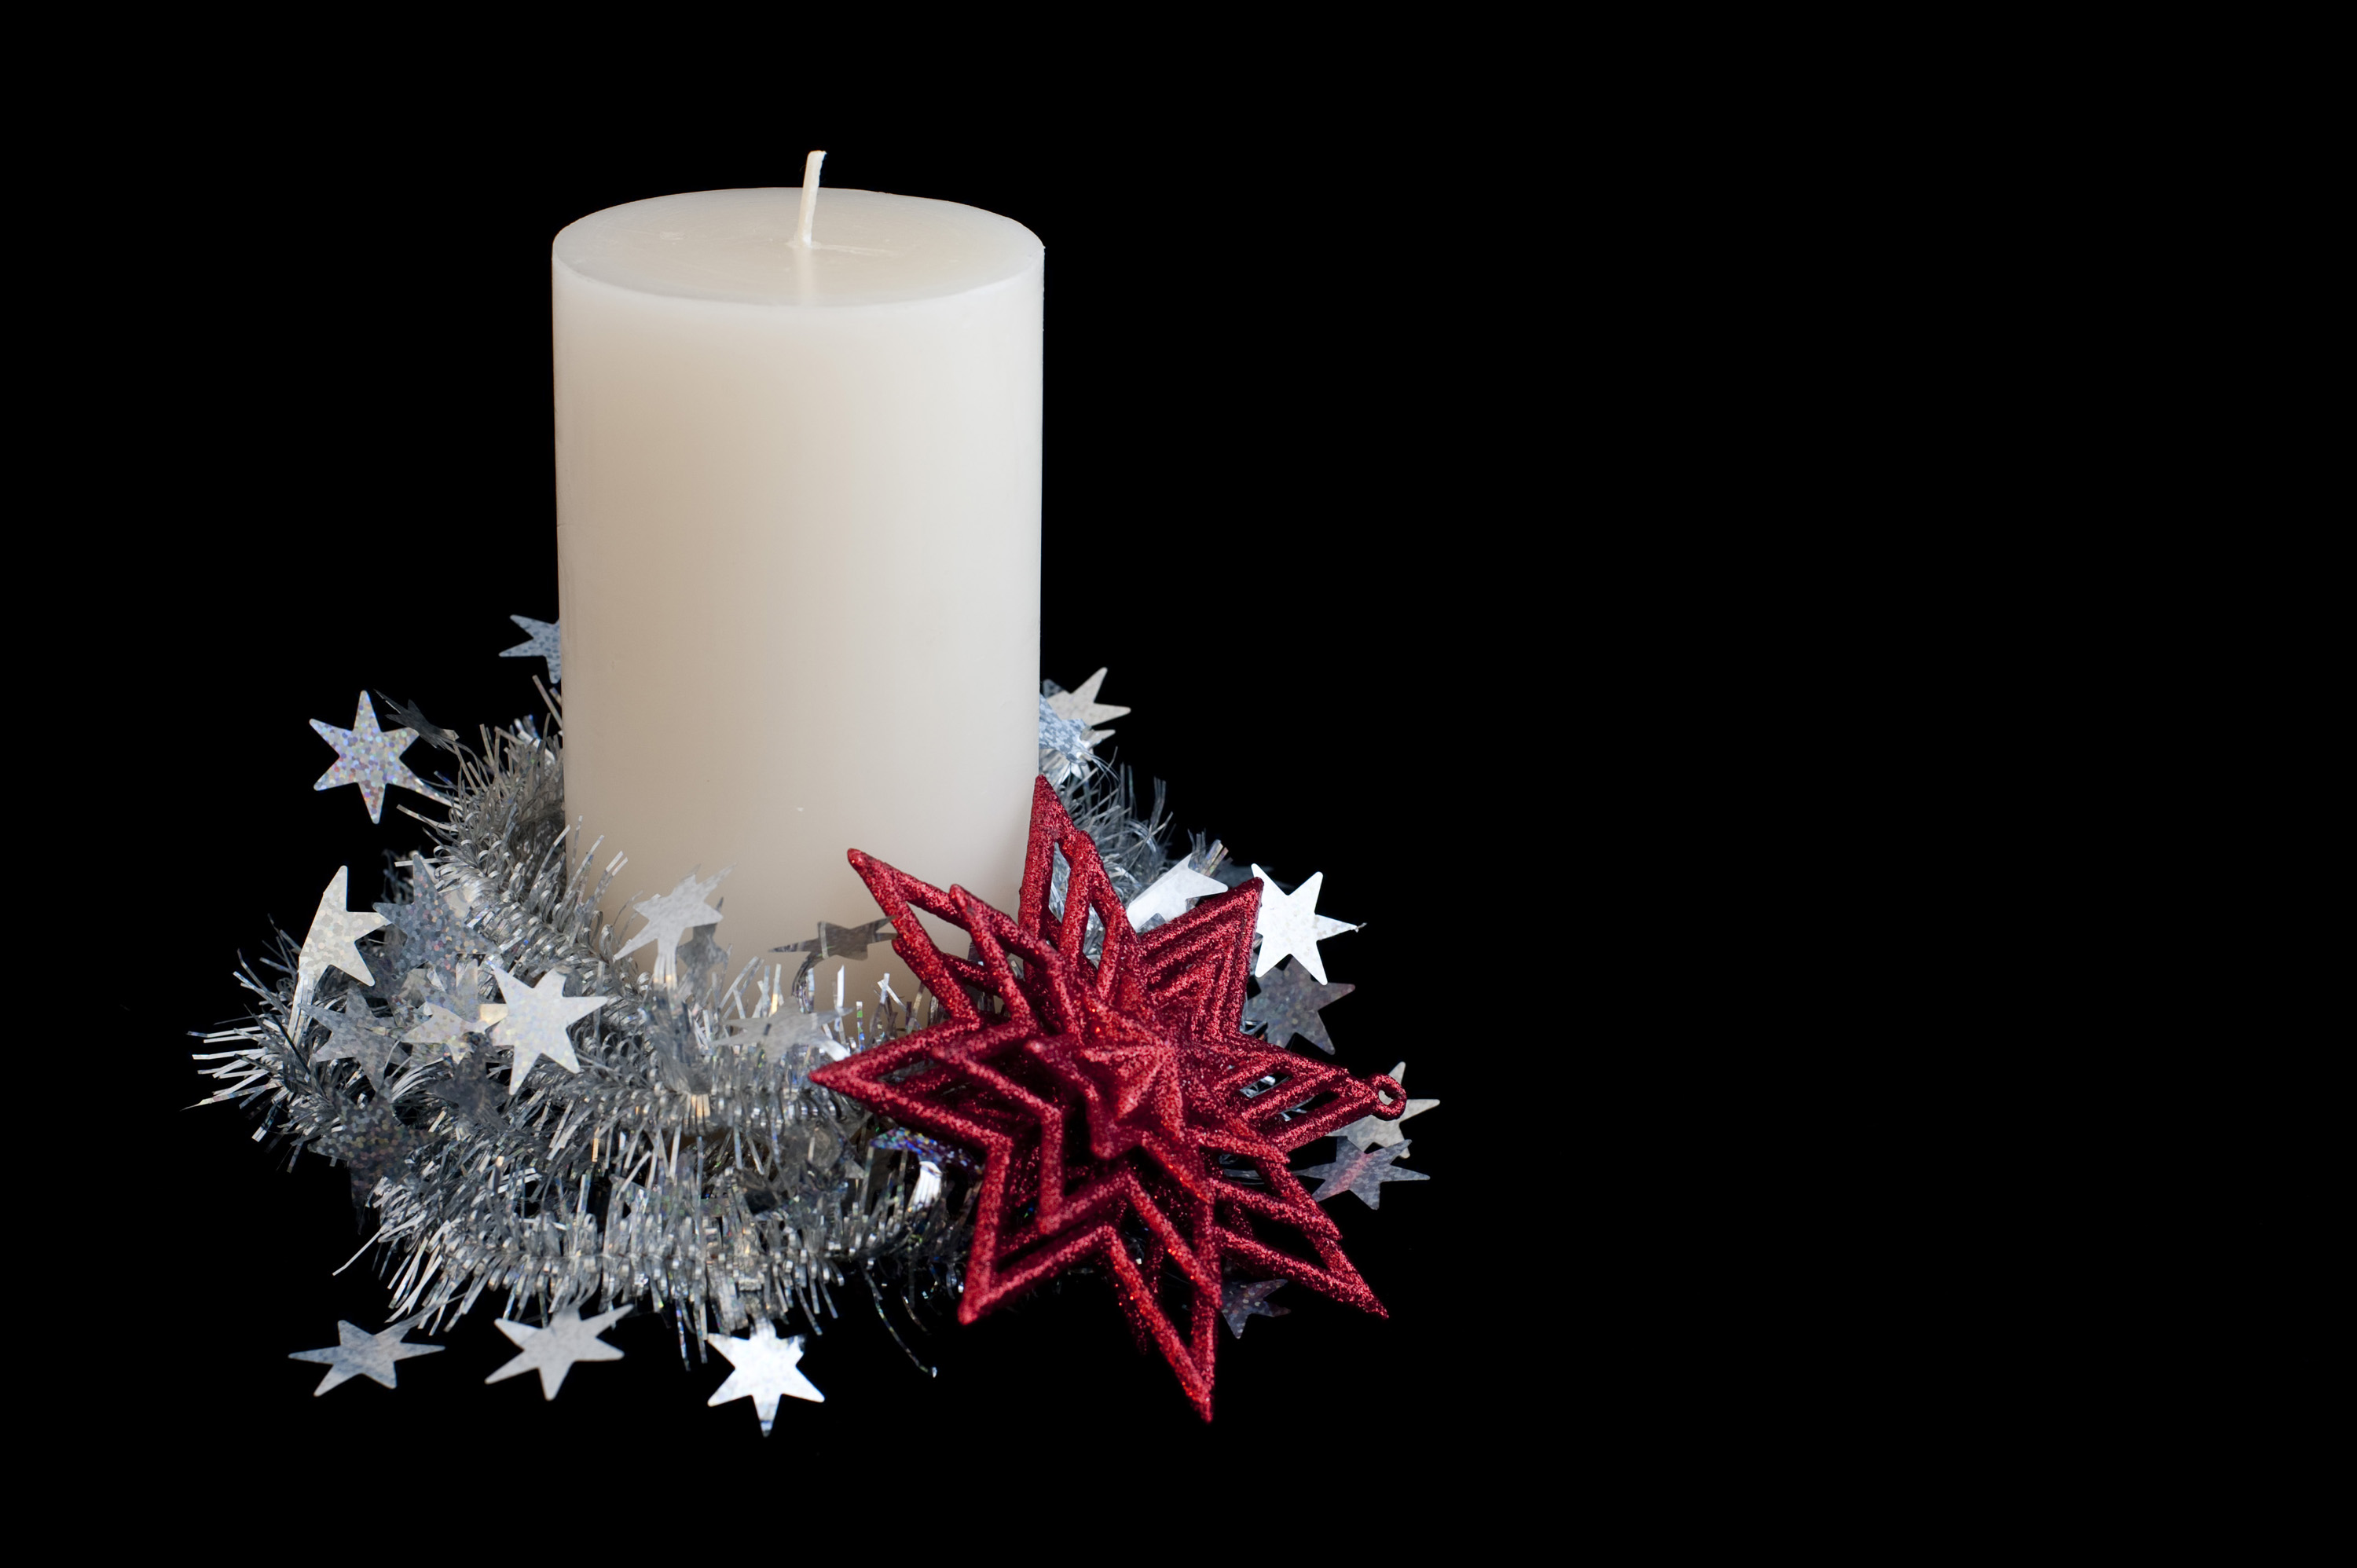 Christmas Candle Black And White Photo Of Unlit Christmas Candle Free Christmas Images